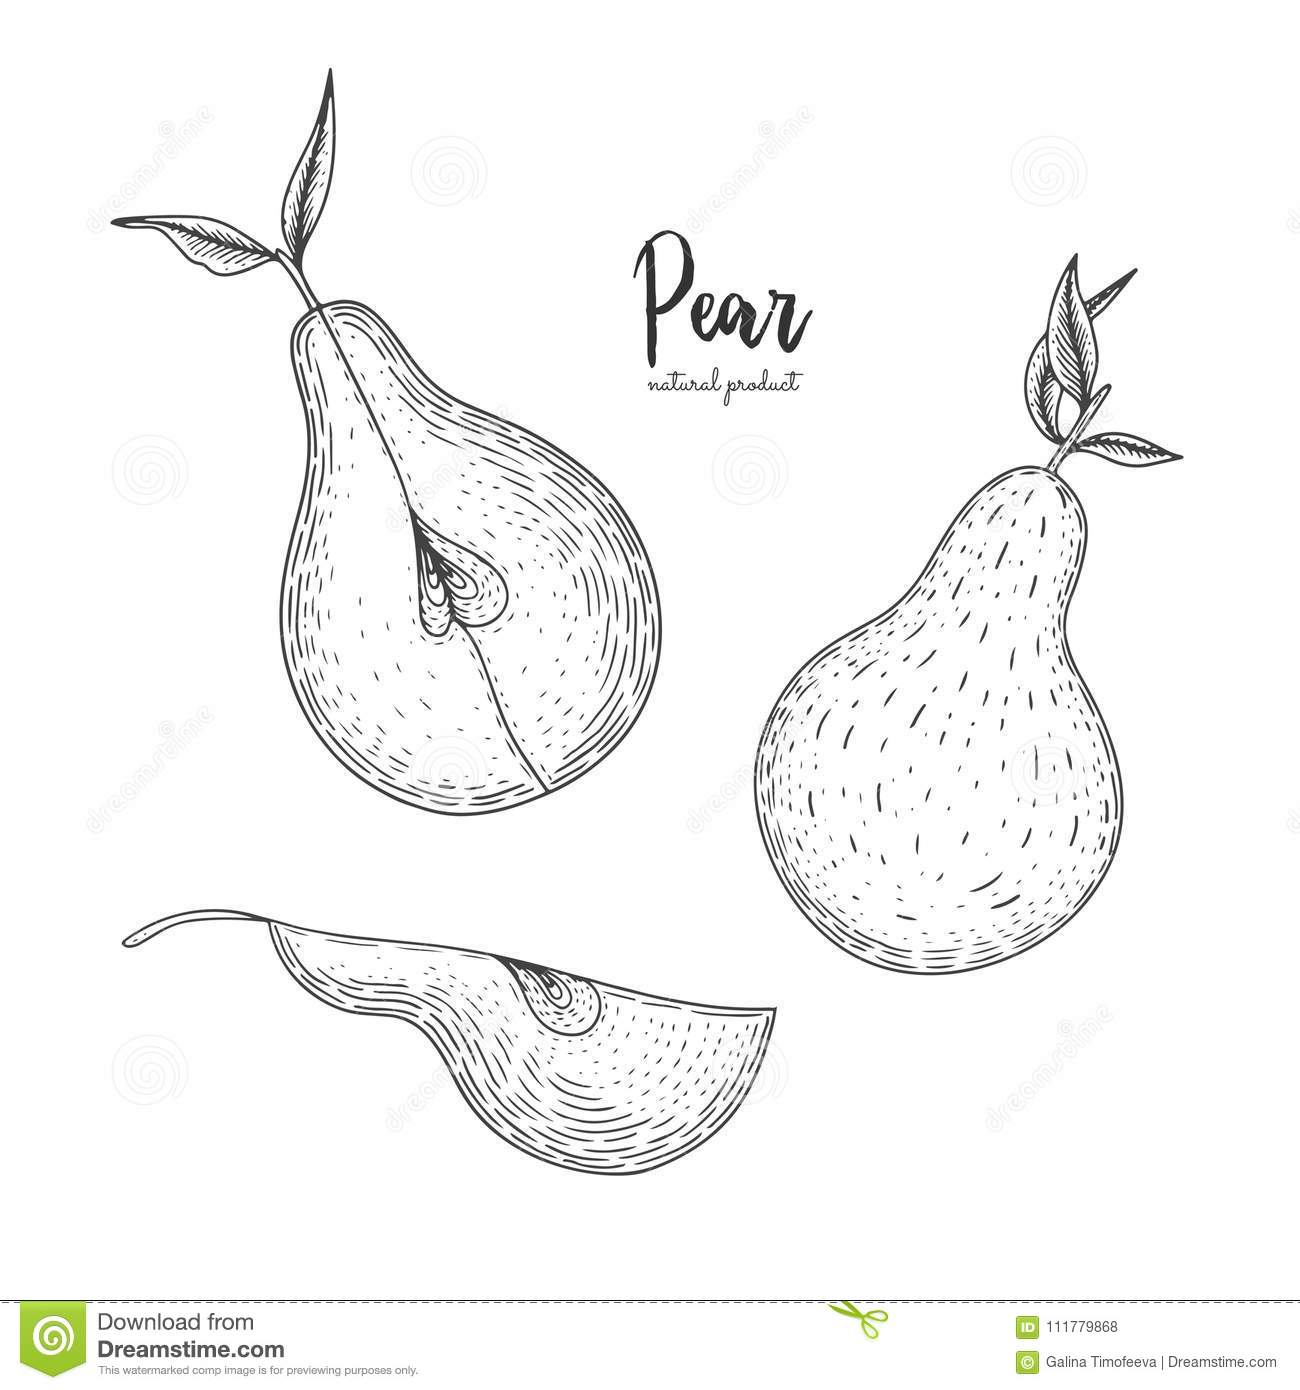 Fruit illustration with pear in the style of engraving. Detailed vegetarian food. Hand drawn elements for menu, greeting